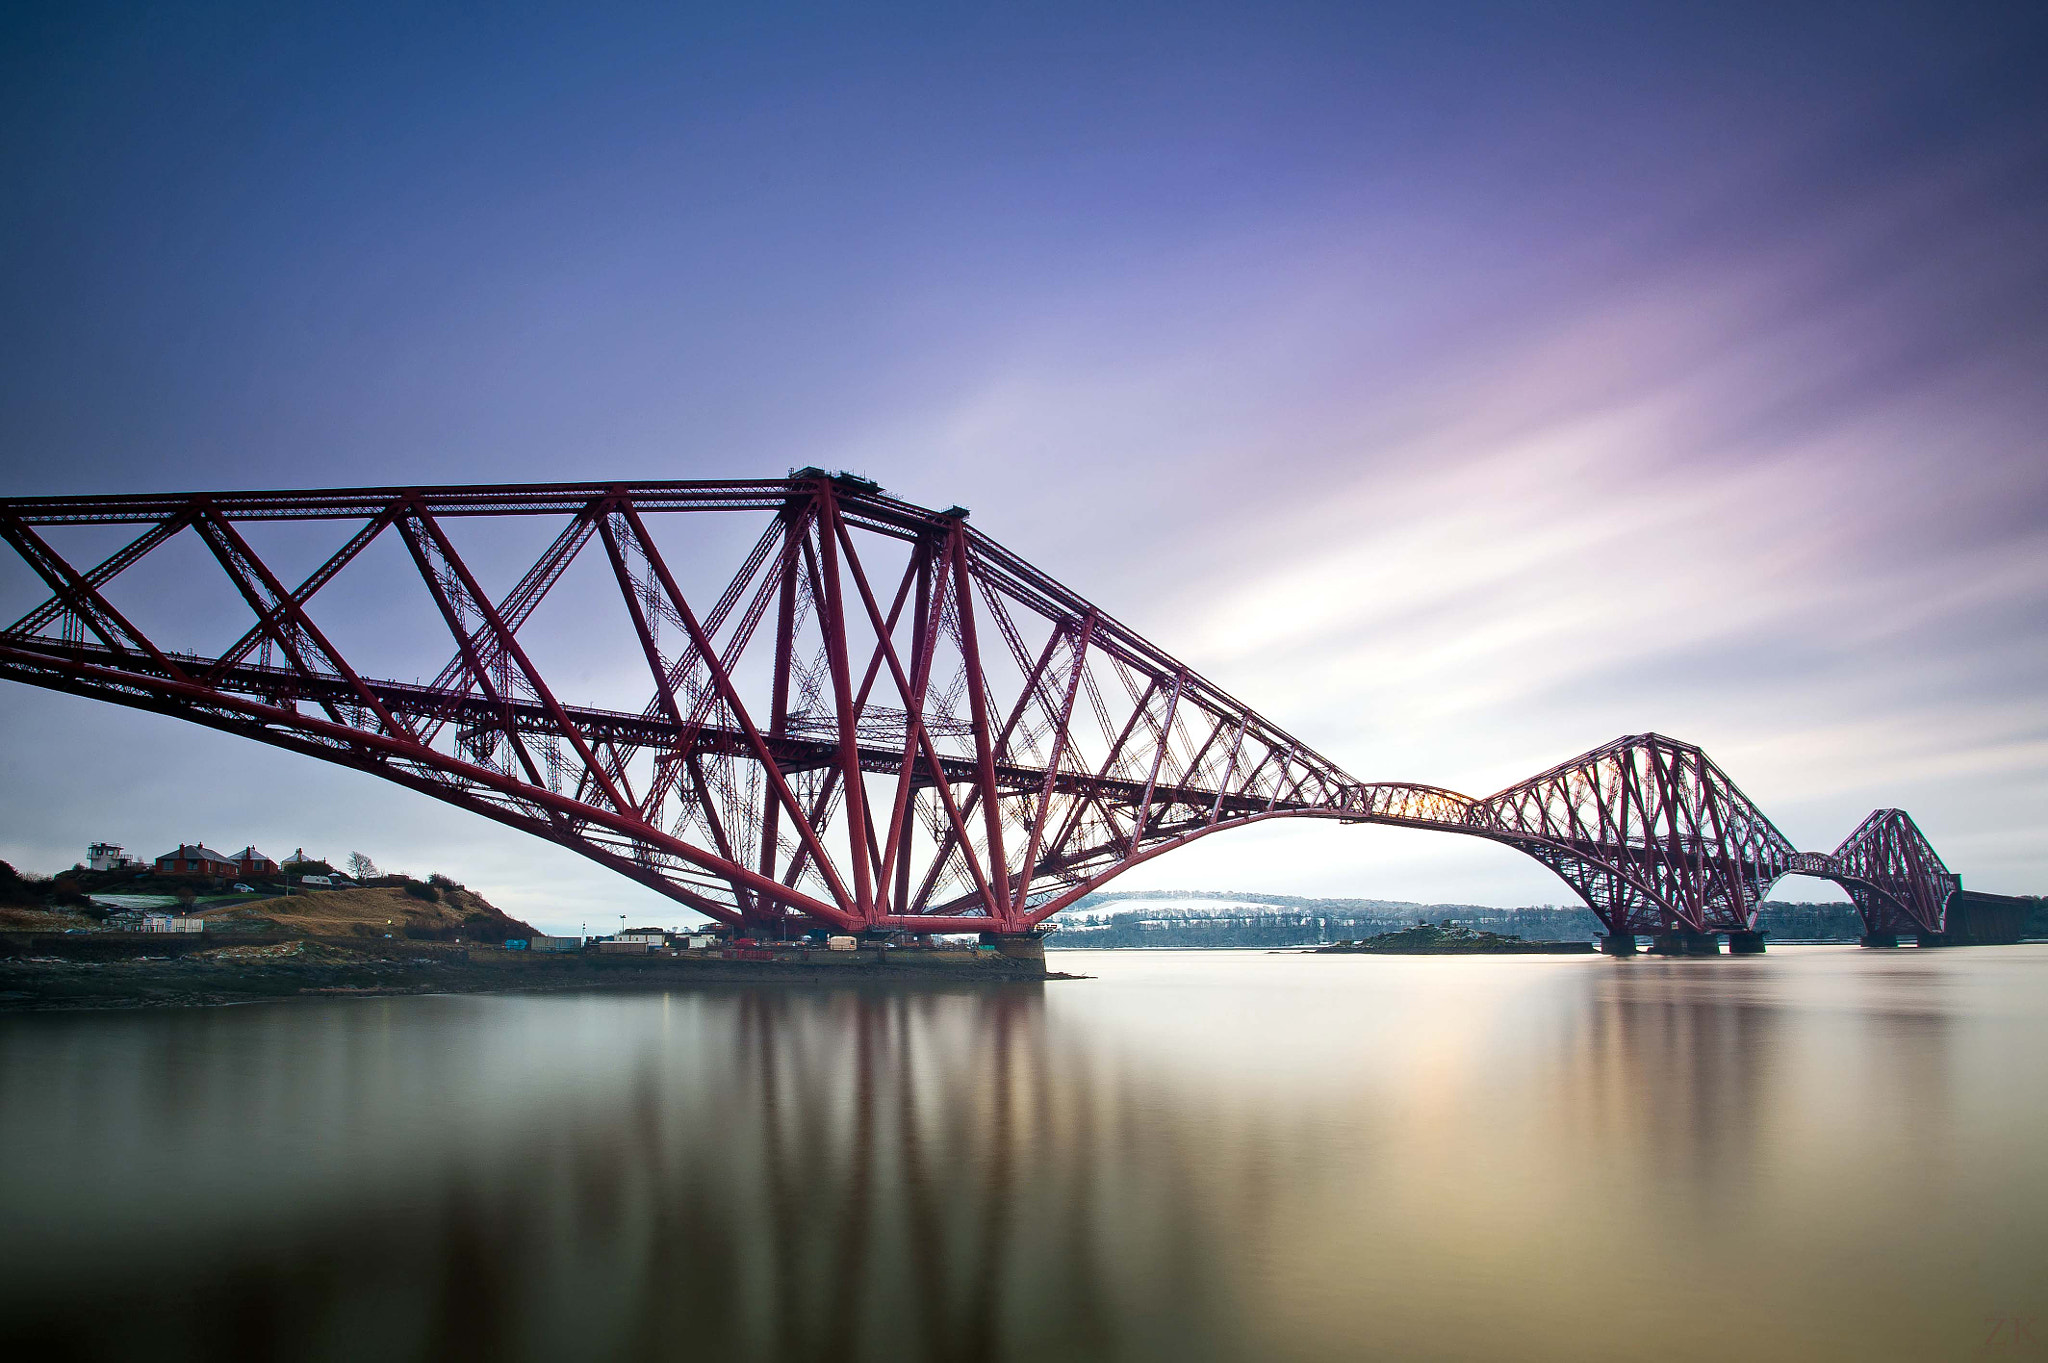 Photograph The Forth Bridge by Zain Kapasi on 500px